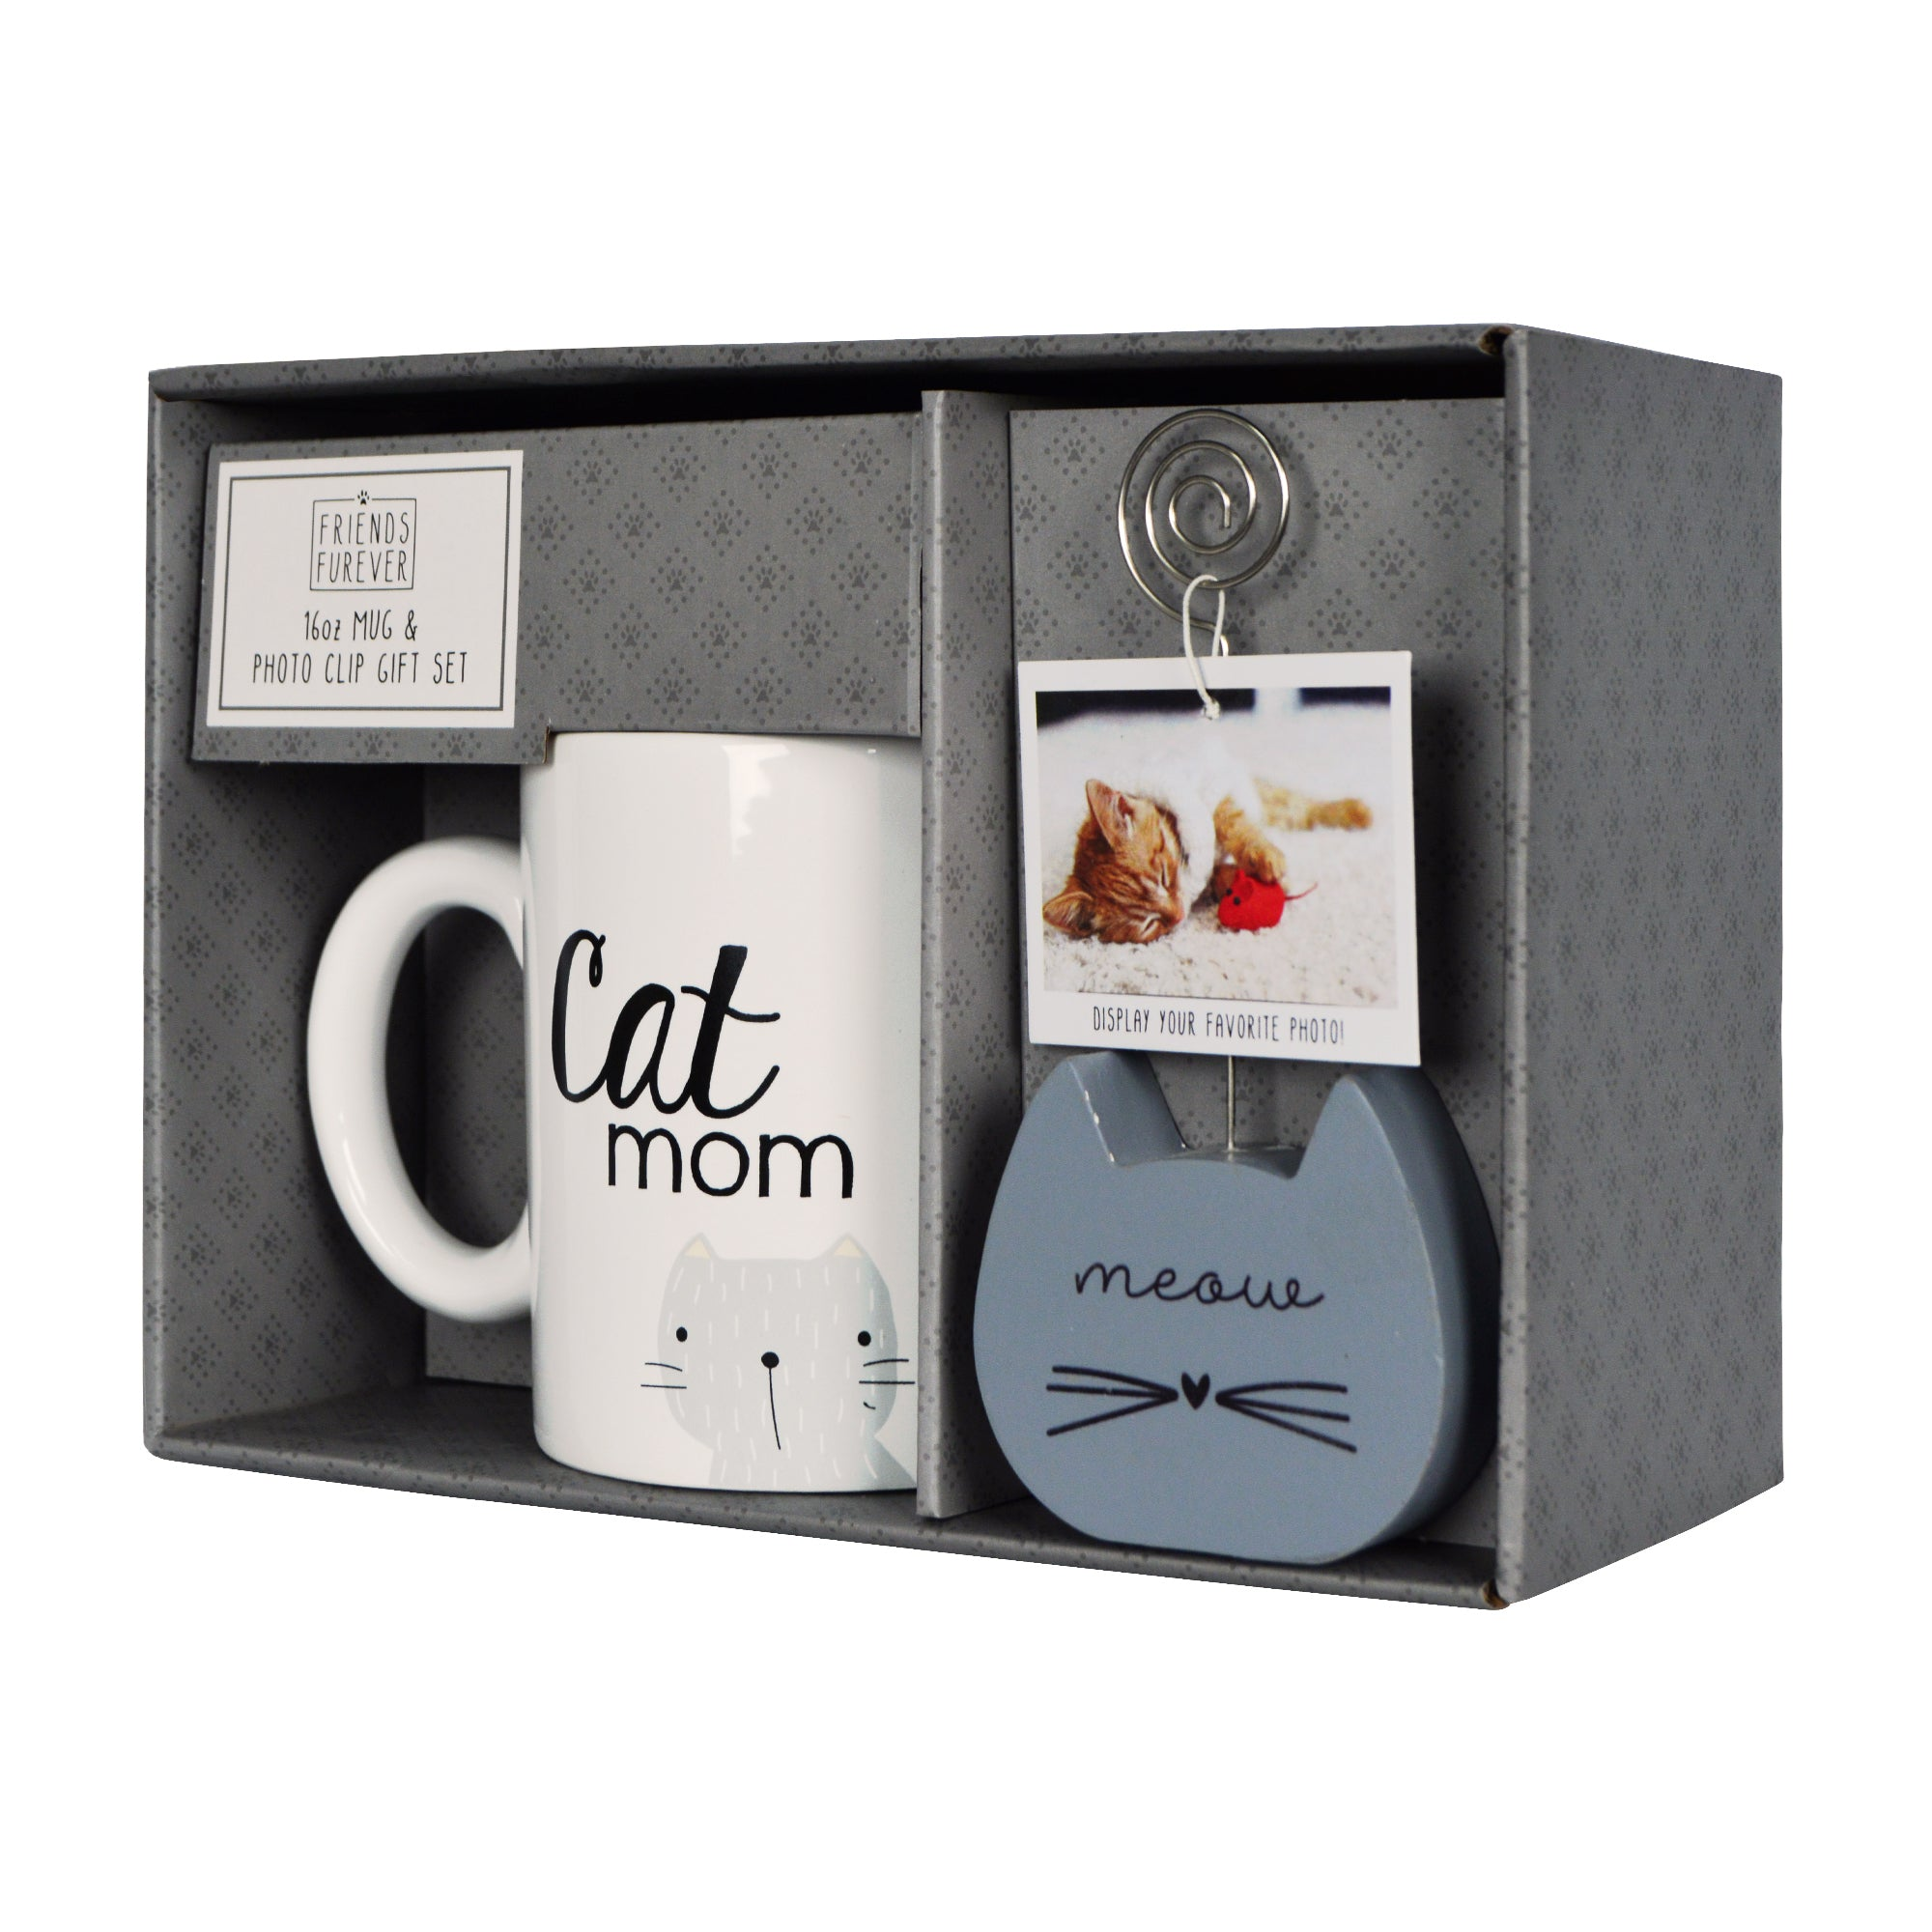 Cat Mom Photo Clippie and Ceramic Coffee Mug Gift Set